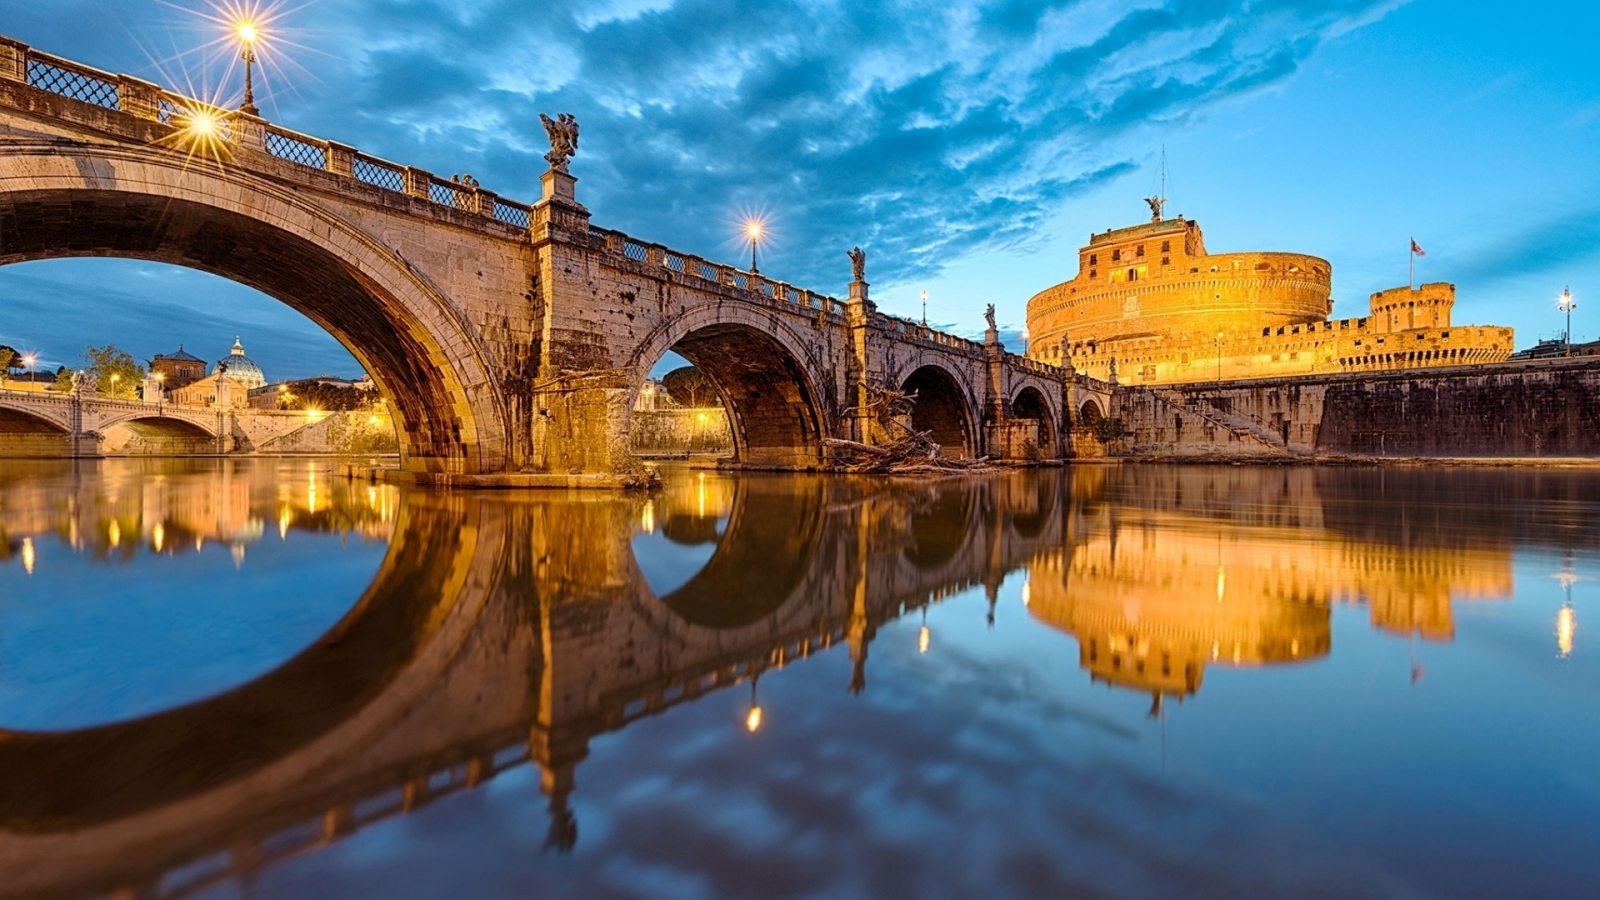 View of St Angelo Bridge for 1600 x 900 HDTV resolution